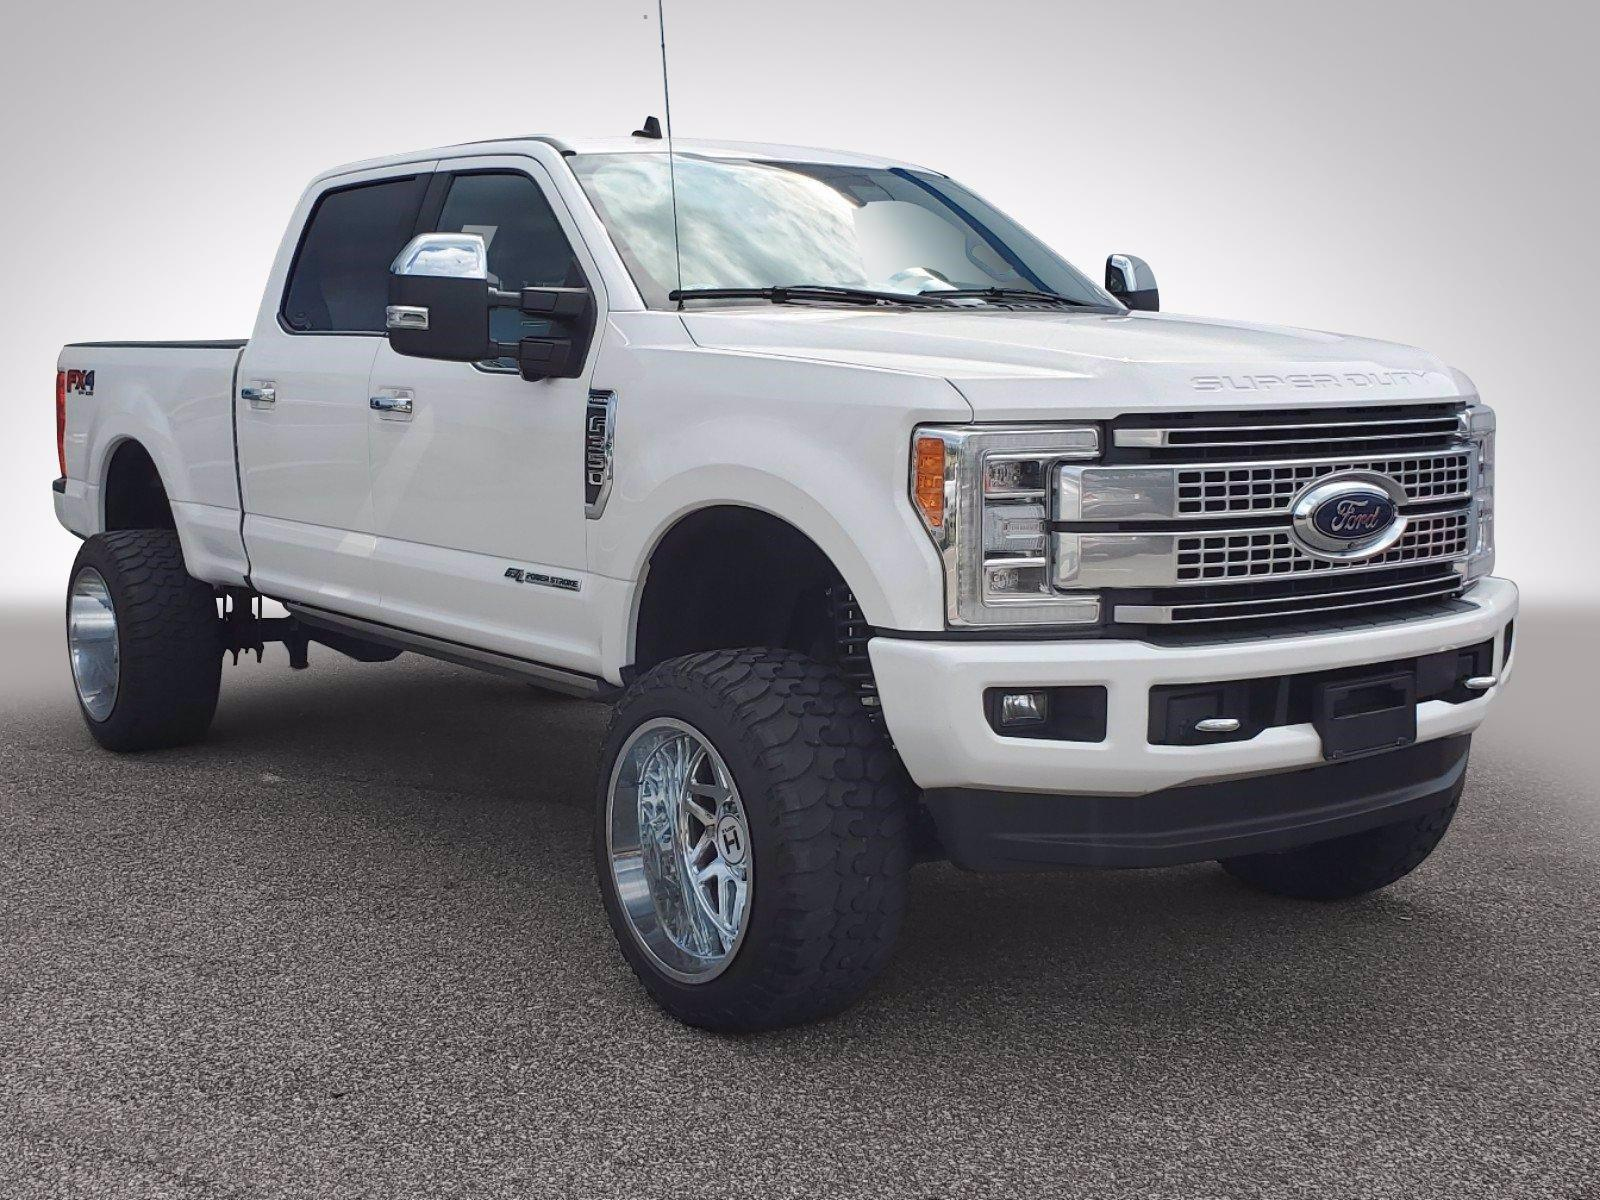 2019 Ford Super Duty F-350 SRW Vehicle Photo in HOOVER, AL 35216